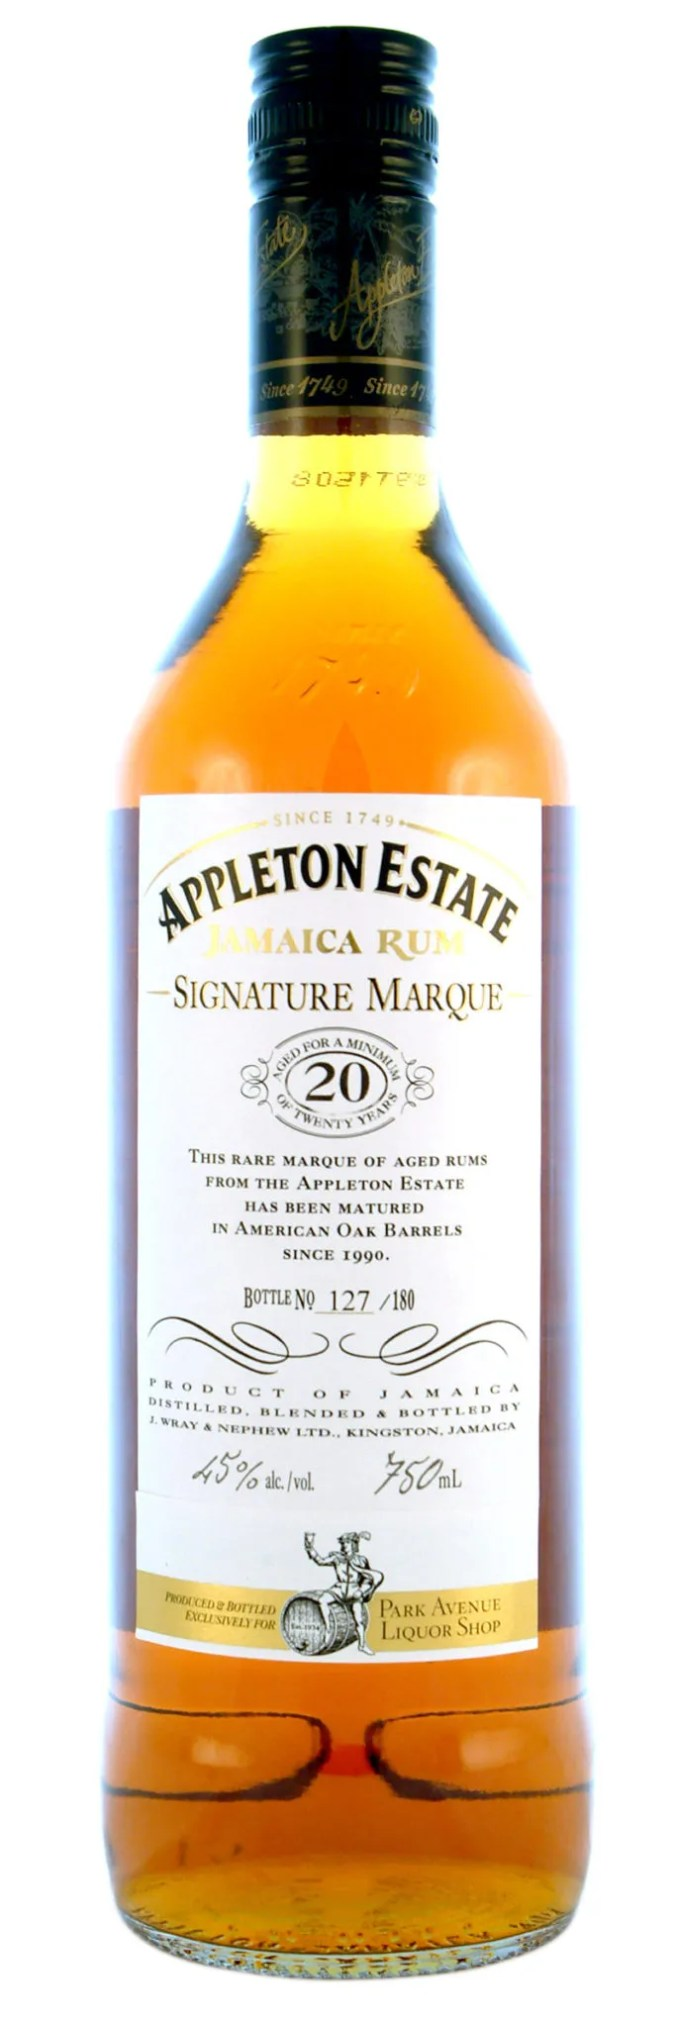 Appleton Estate 20 Year Signature Marque Image